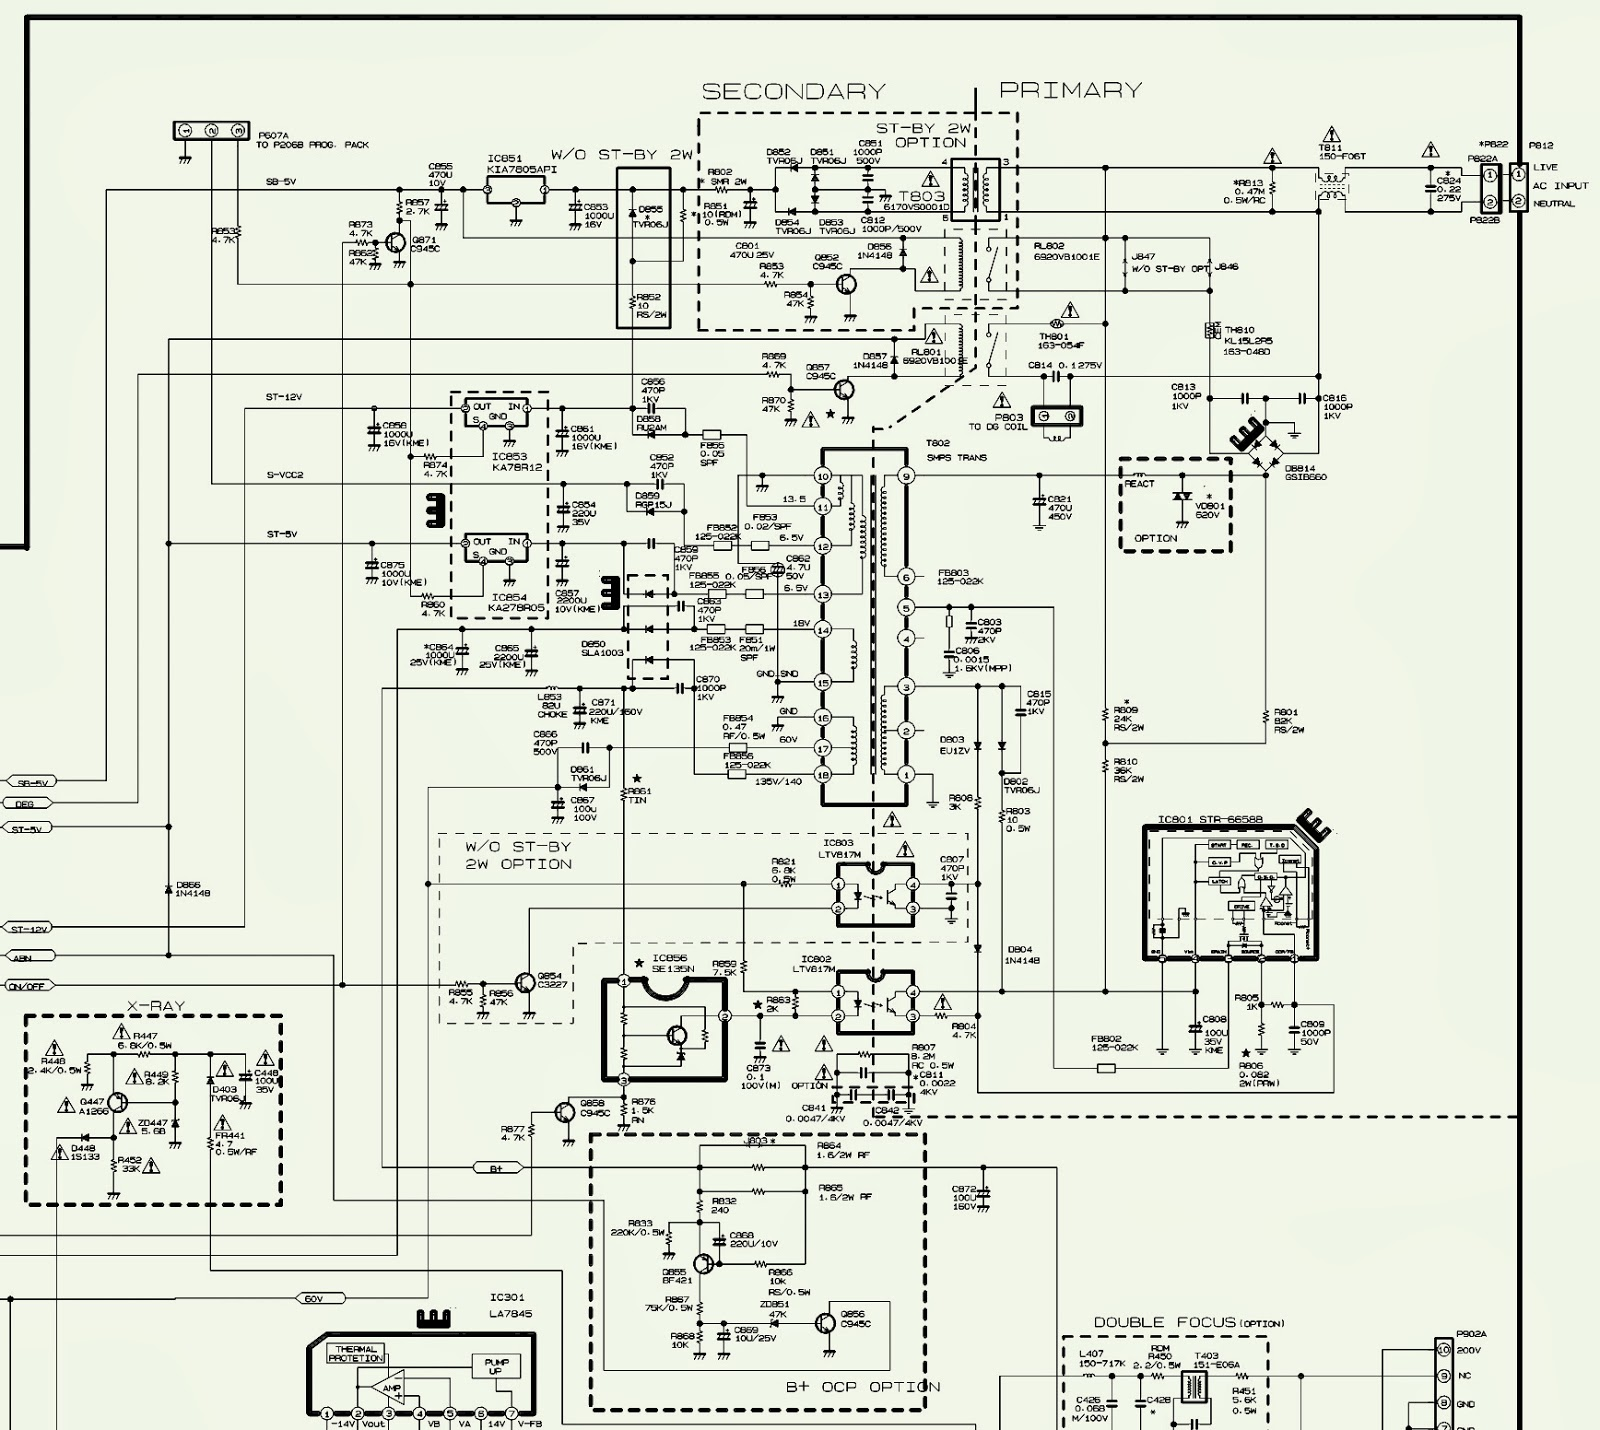 Samsung Microwave Wiring Diagram - wiring diagrams on sharp microwave electrical diagram, maytag microwave schematic diagram, ge microwave schematic diagram, microwave oven state diagram, sharp microwave parts diagram, whirlpool microwave schematic diagram, microwave oven schematic diagram, panasonic microwave schematic diagram, sharp microwave wiring diagram, samsung microwave schematic diagram,